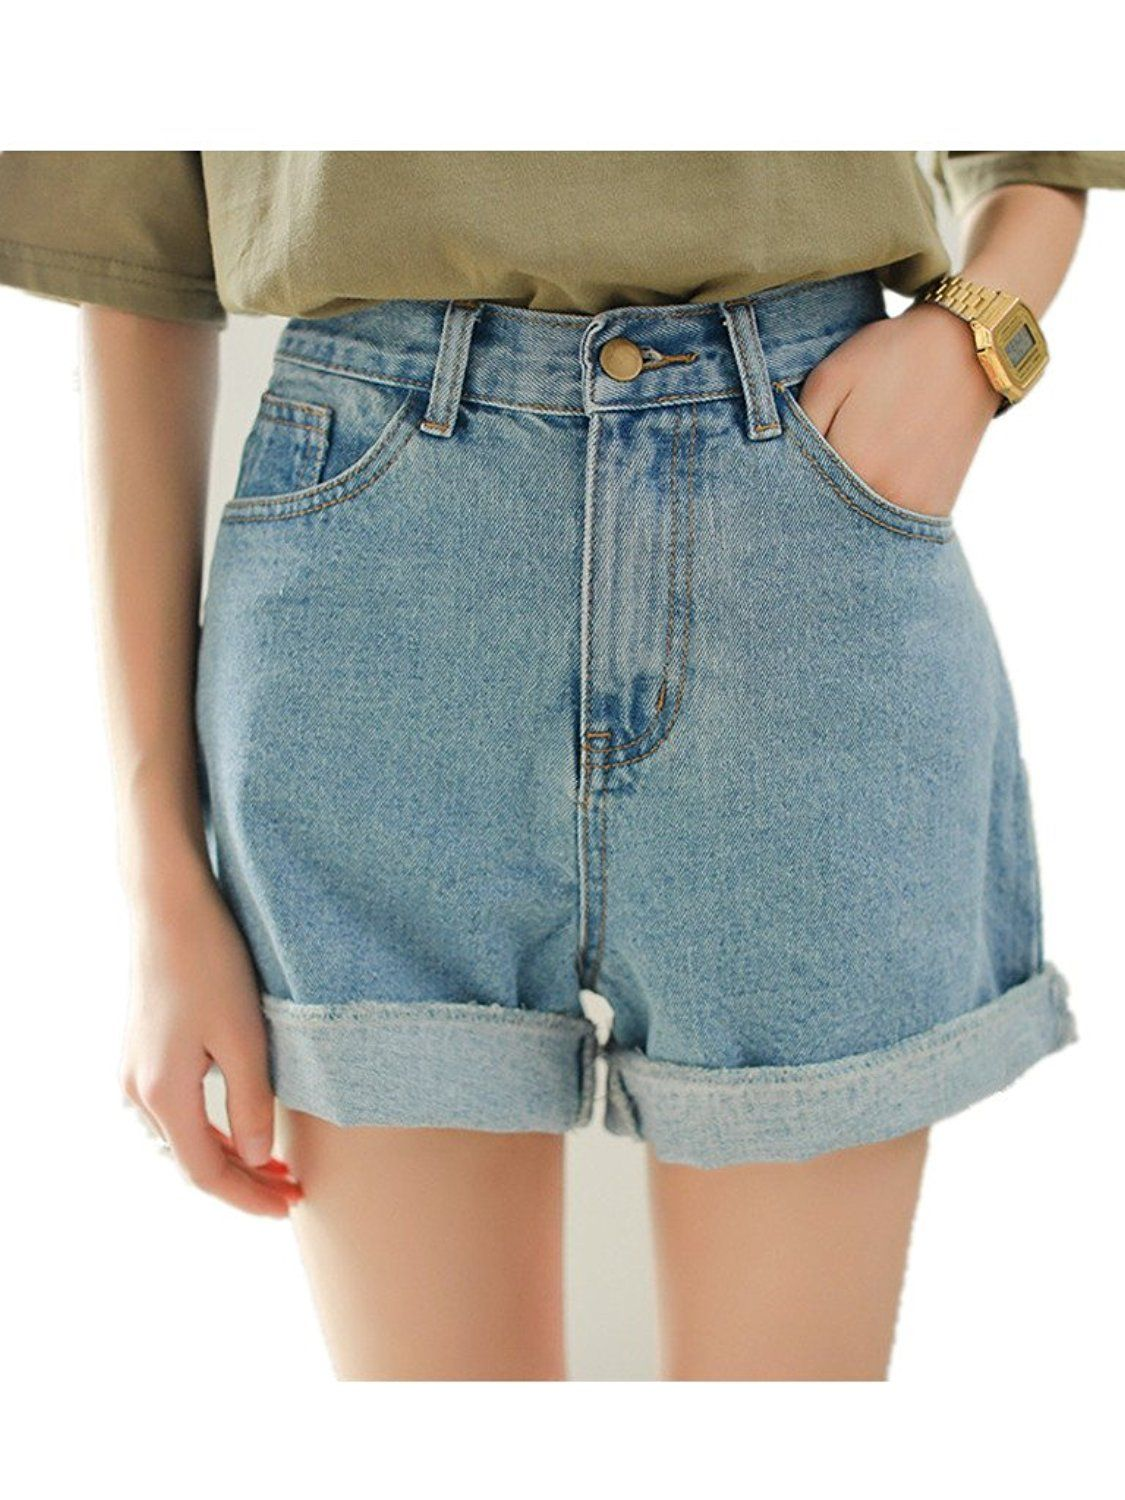 0a1349f40b9 Season Show Girls Denim Shorts Retro High Waisted Jeans Shorts Pant at  Amazon Women s Clothing store